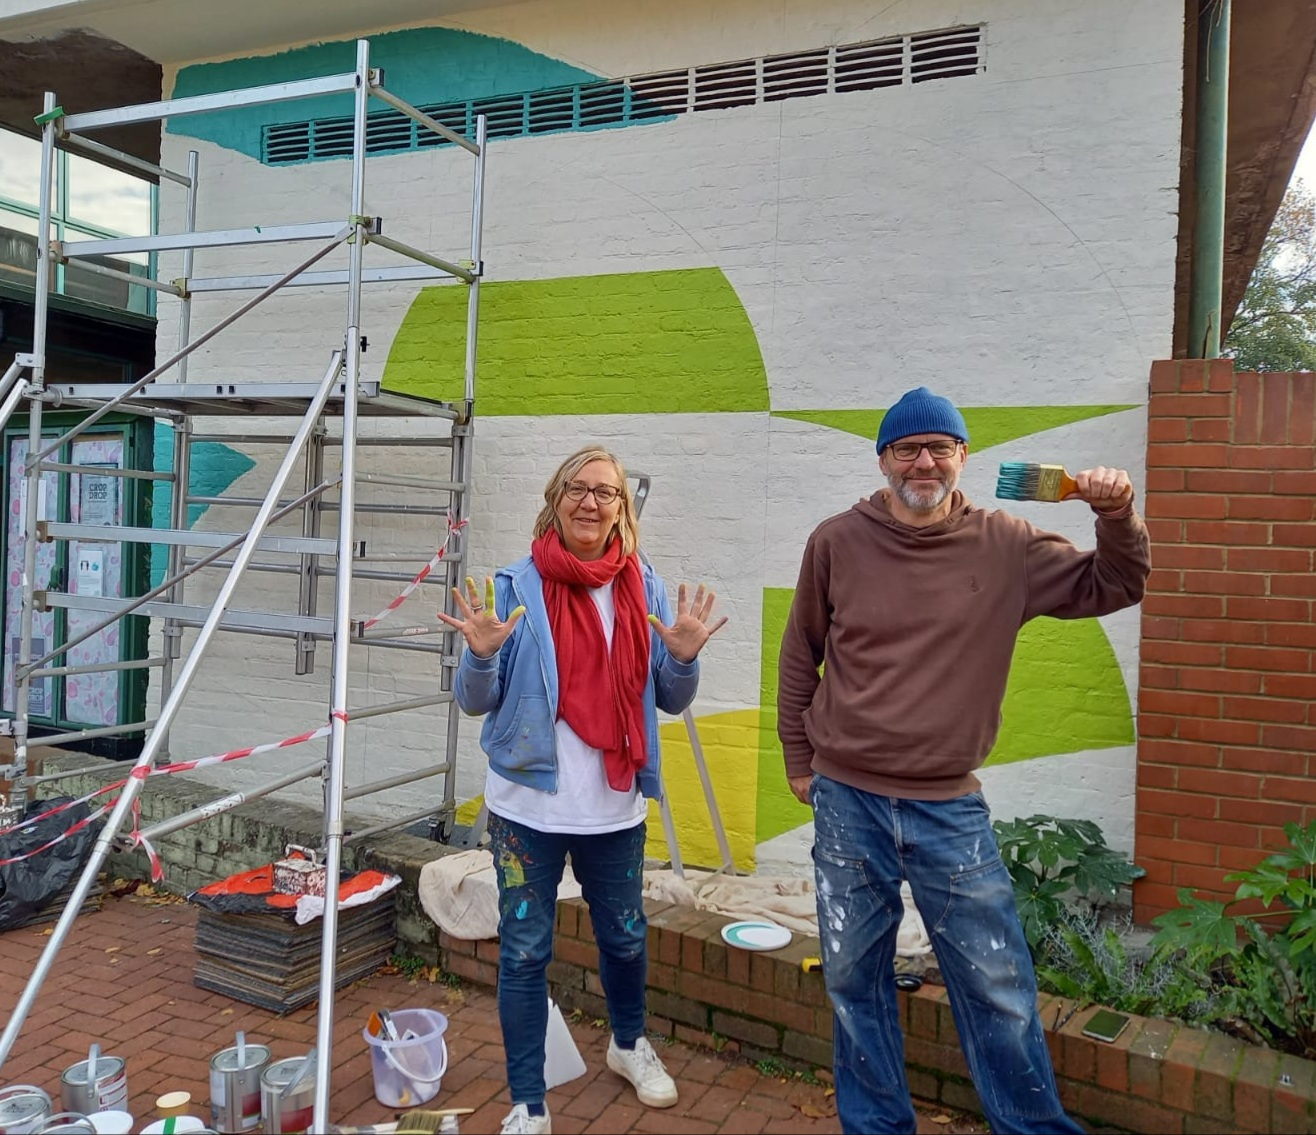 Jo Angell, artist, and her brother painting a new graphic mural at Hornsey Vale